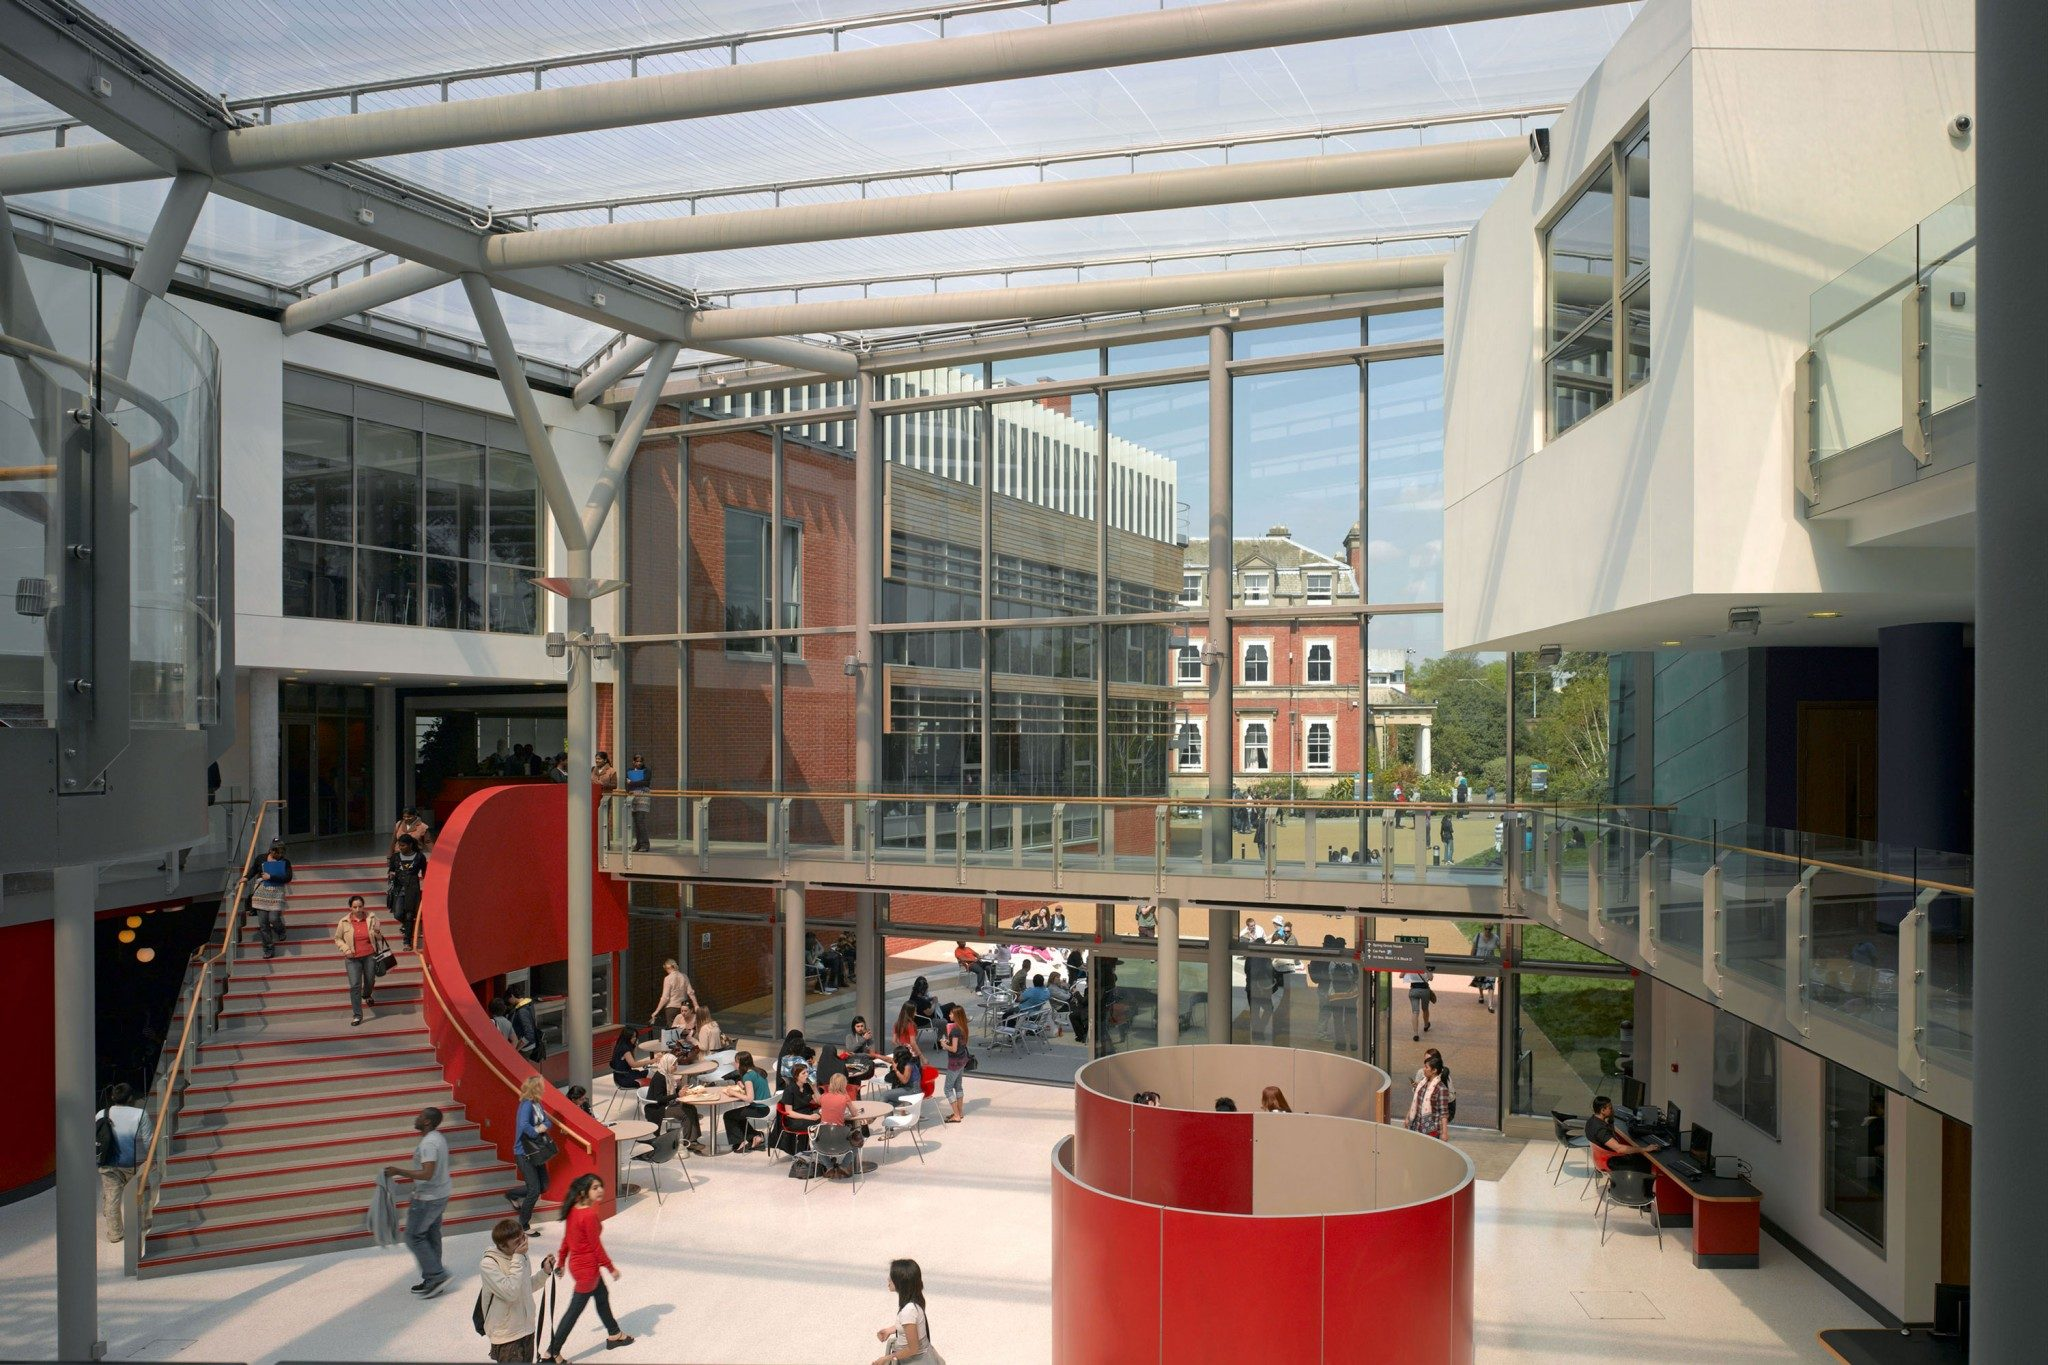 mackenzie wheeler are education and school architects based in london specialising in masterplanning and redevelopment